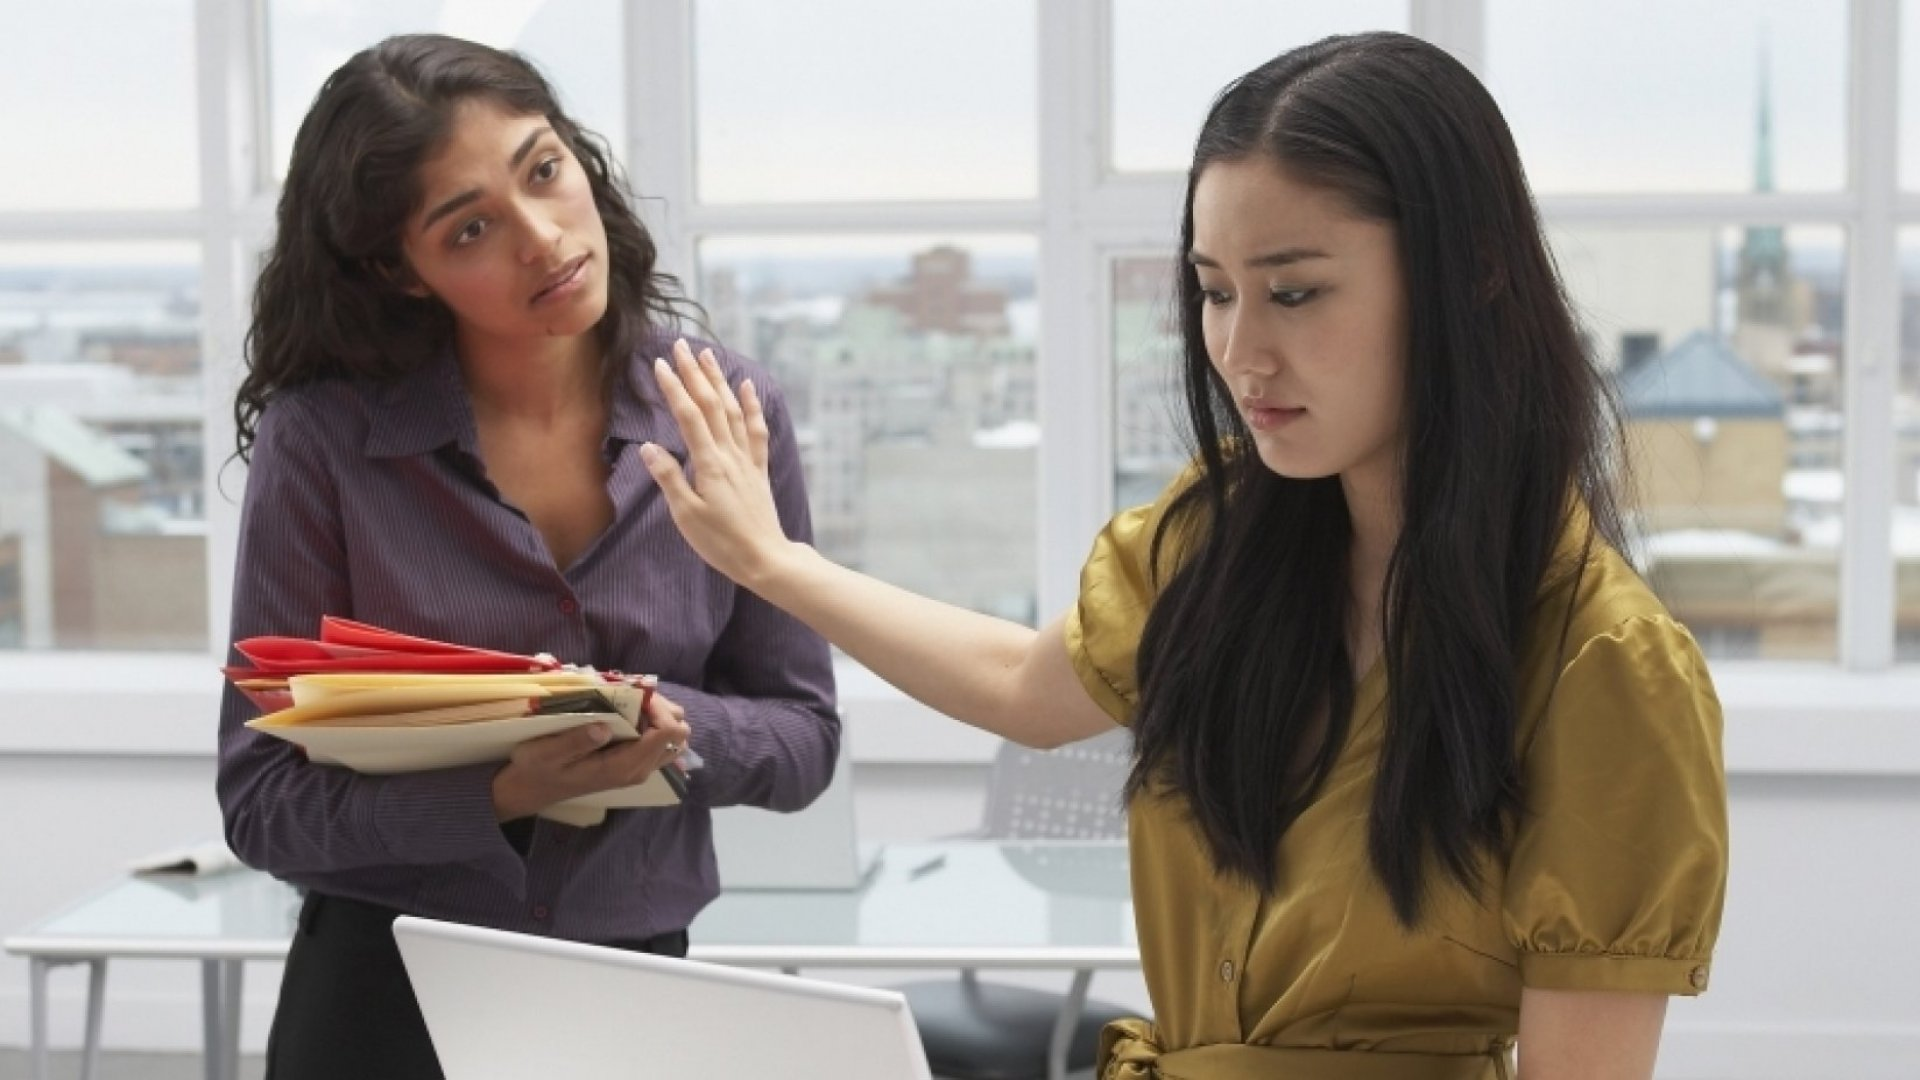 How to Work with a Rude and Dismissive Colleague